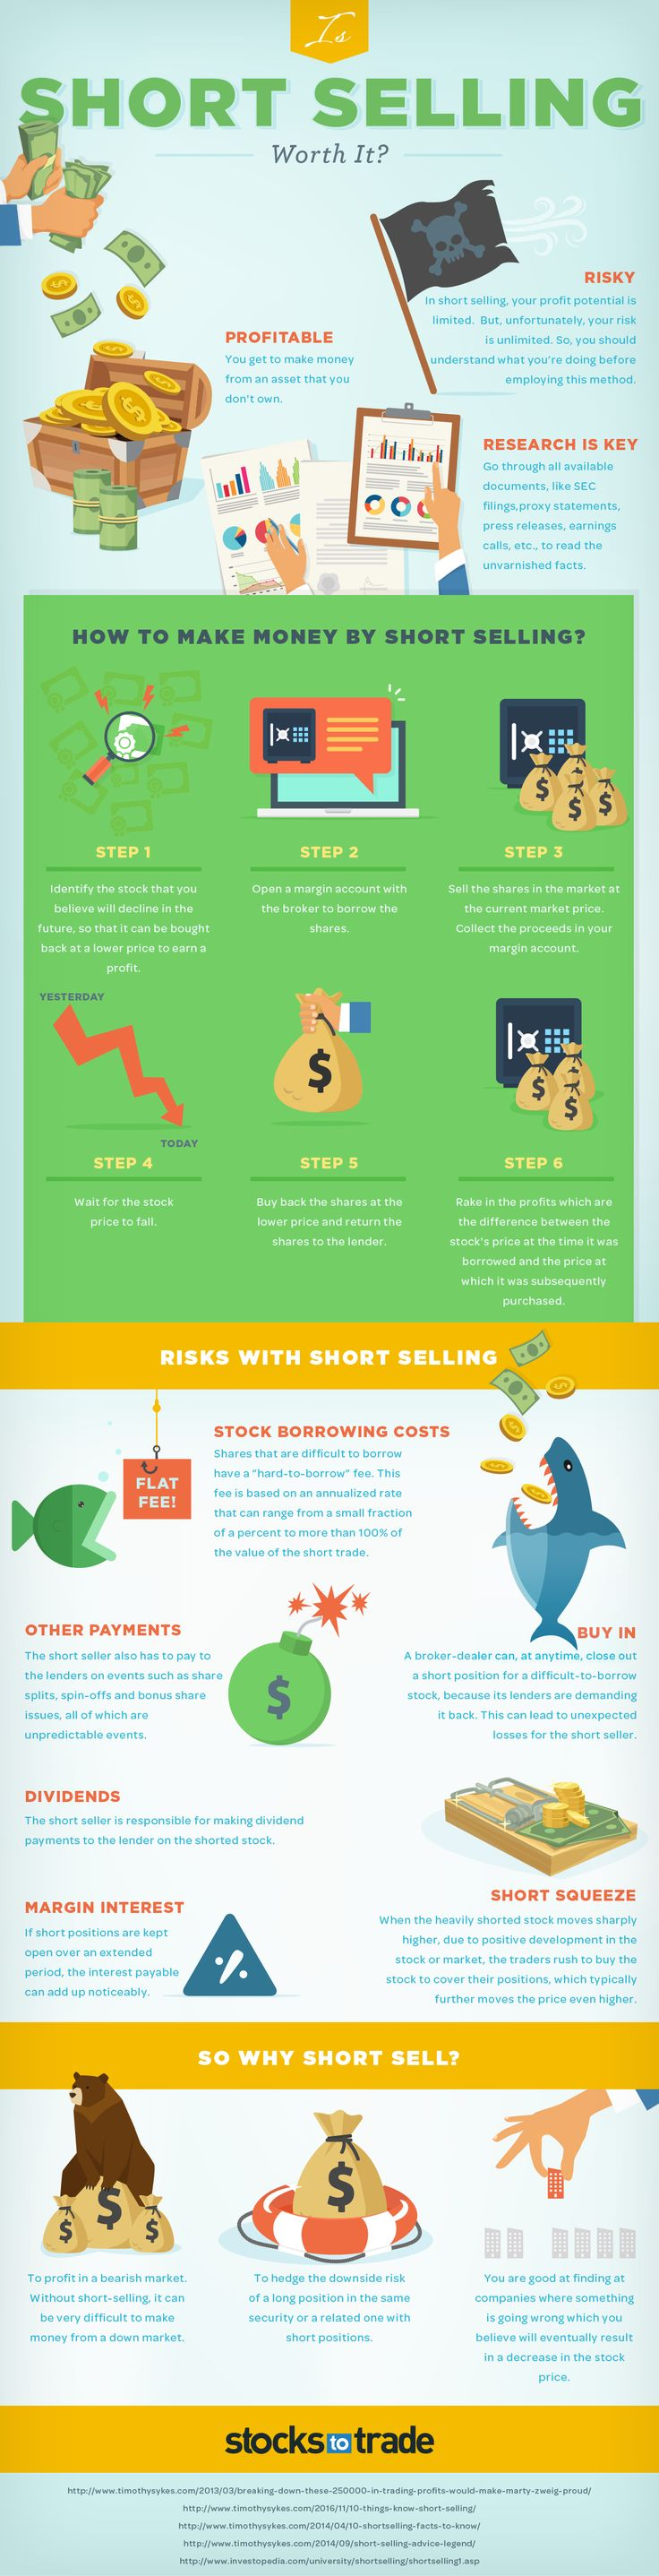 Is Short-Selling Worth It? #Infographic #Sales